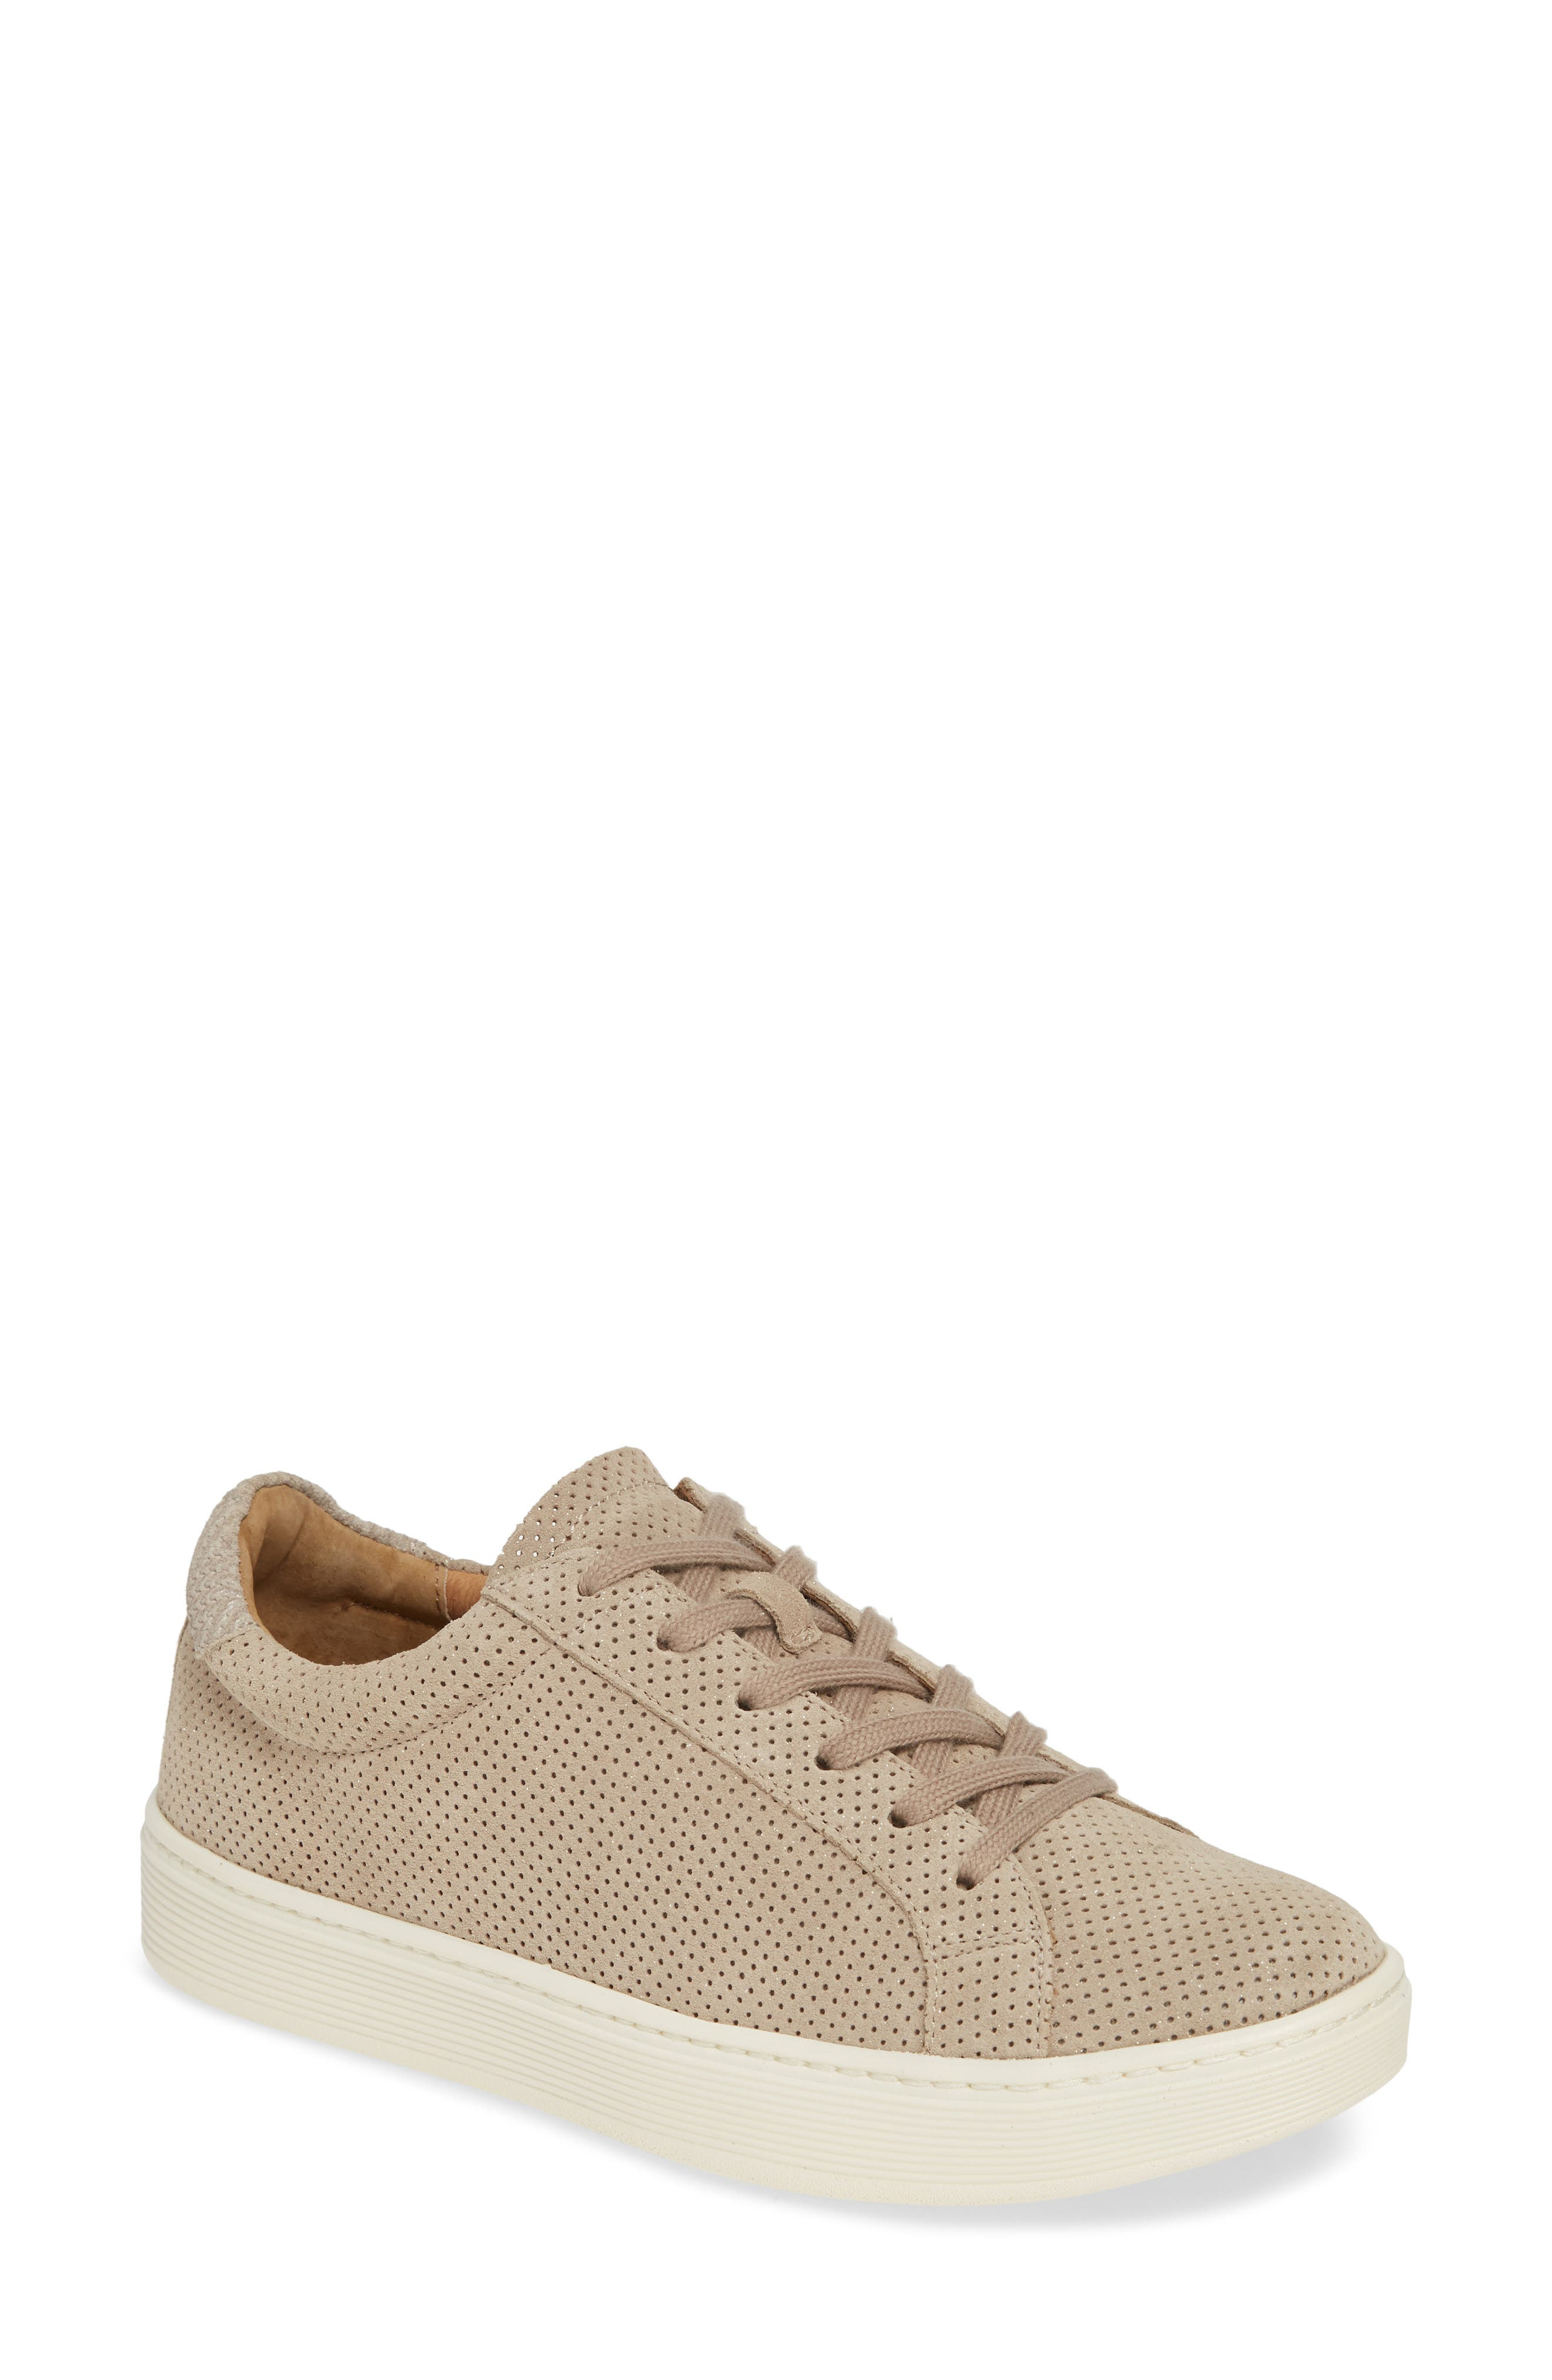 SÖFFT, Somers Perforated Sneaker, Main thumbnail 1, color, MOONSTONE GREY SUEDE